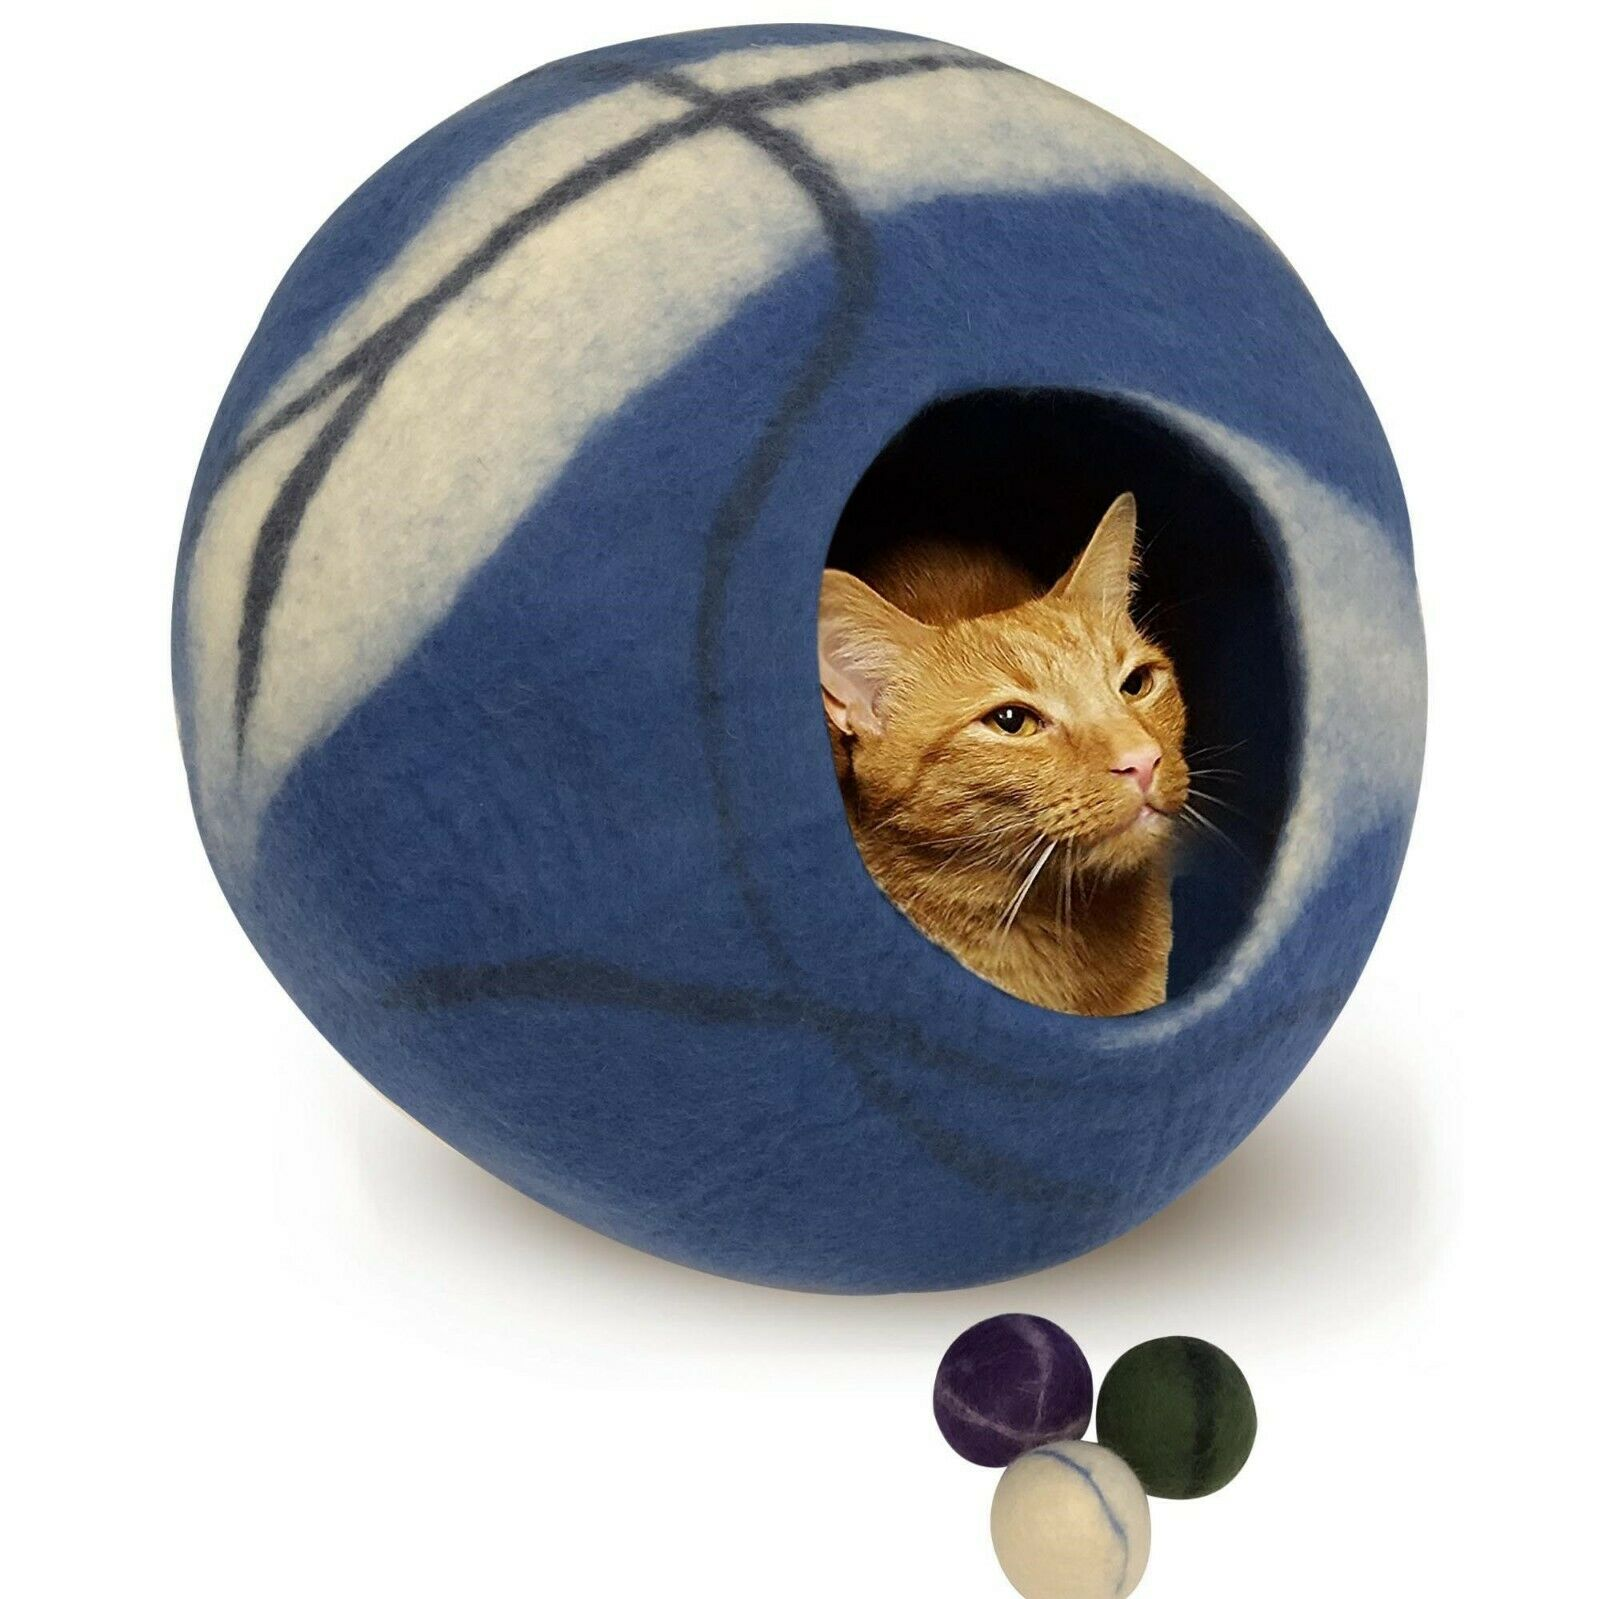 Genuine Felt Cat Bed Cave, Handmade in Nepal with 100% All Natural Wool